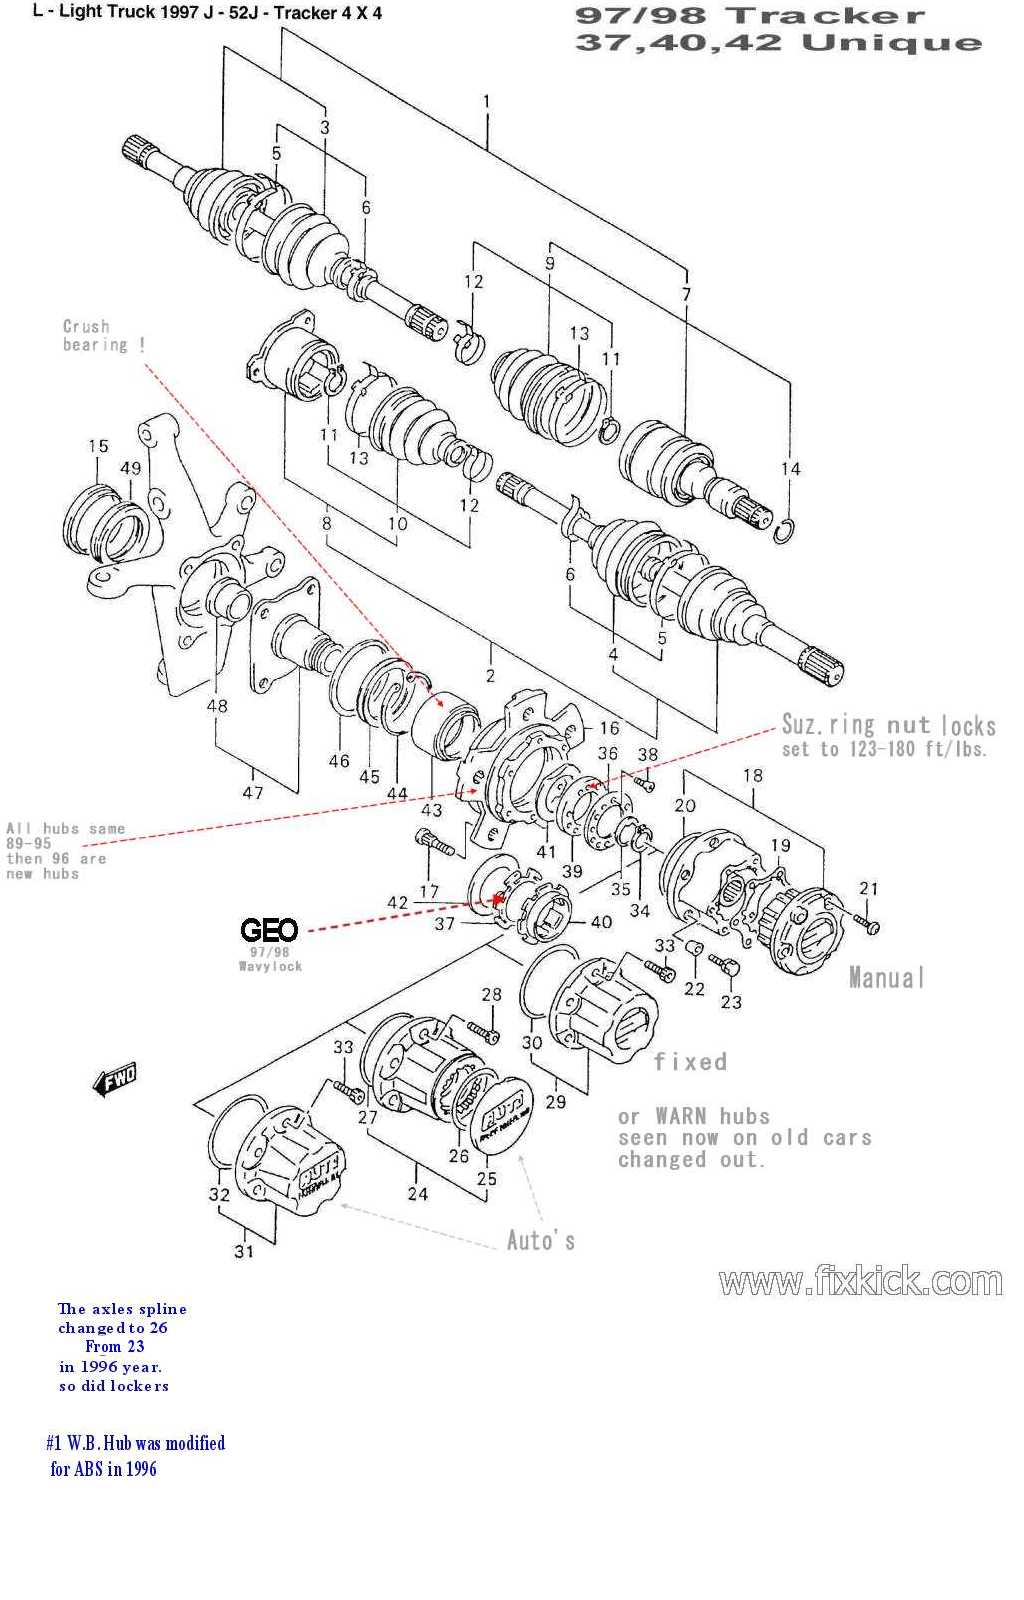 [all] servicing the front axle locking hubs